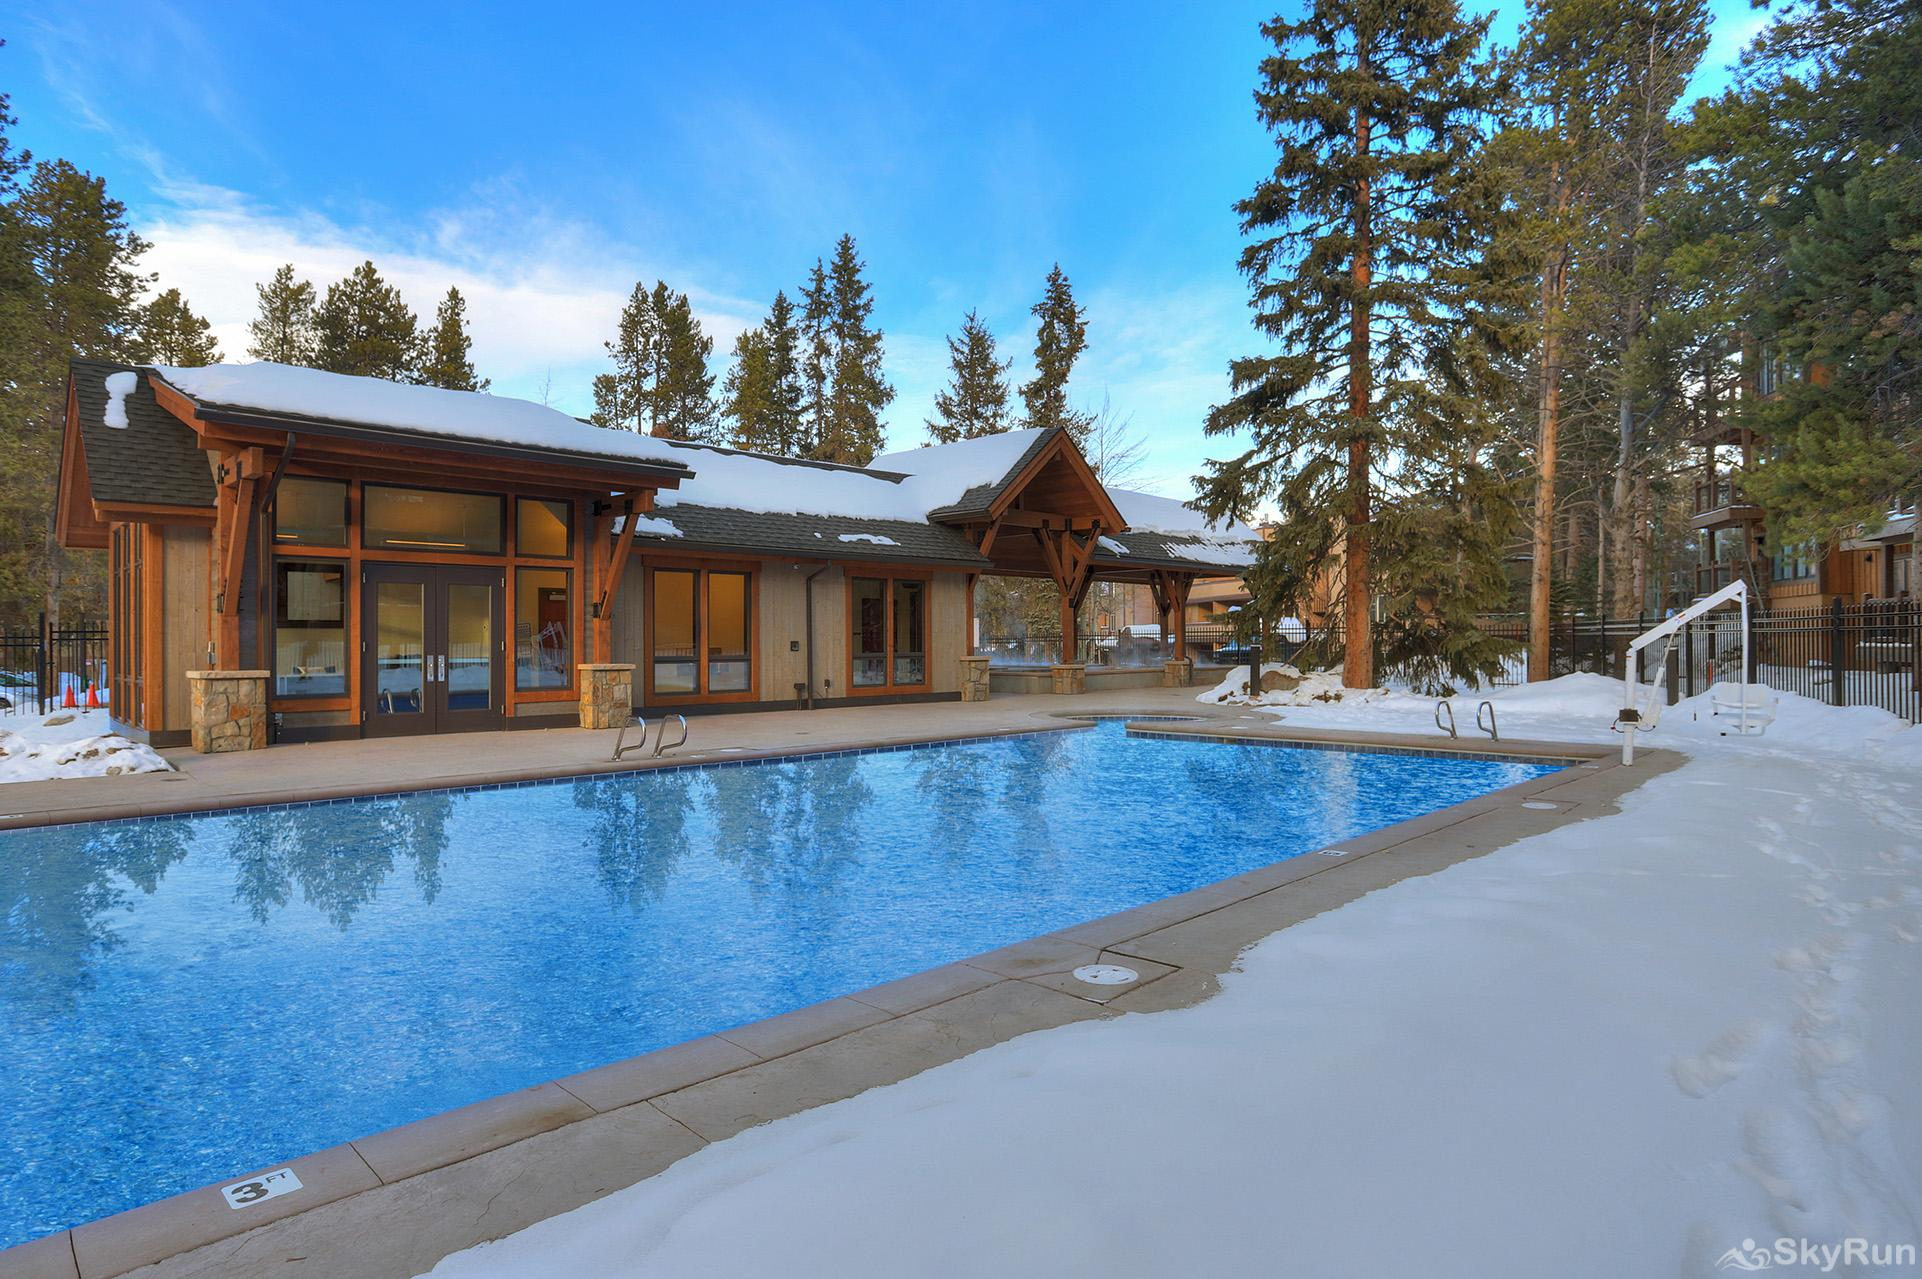 The Lift C12 Guests enjoy access to the Columbine Pool & Hot Tub Complex